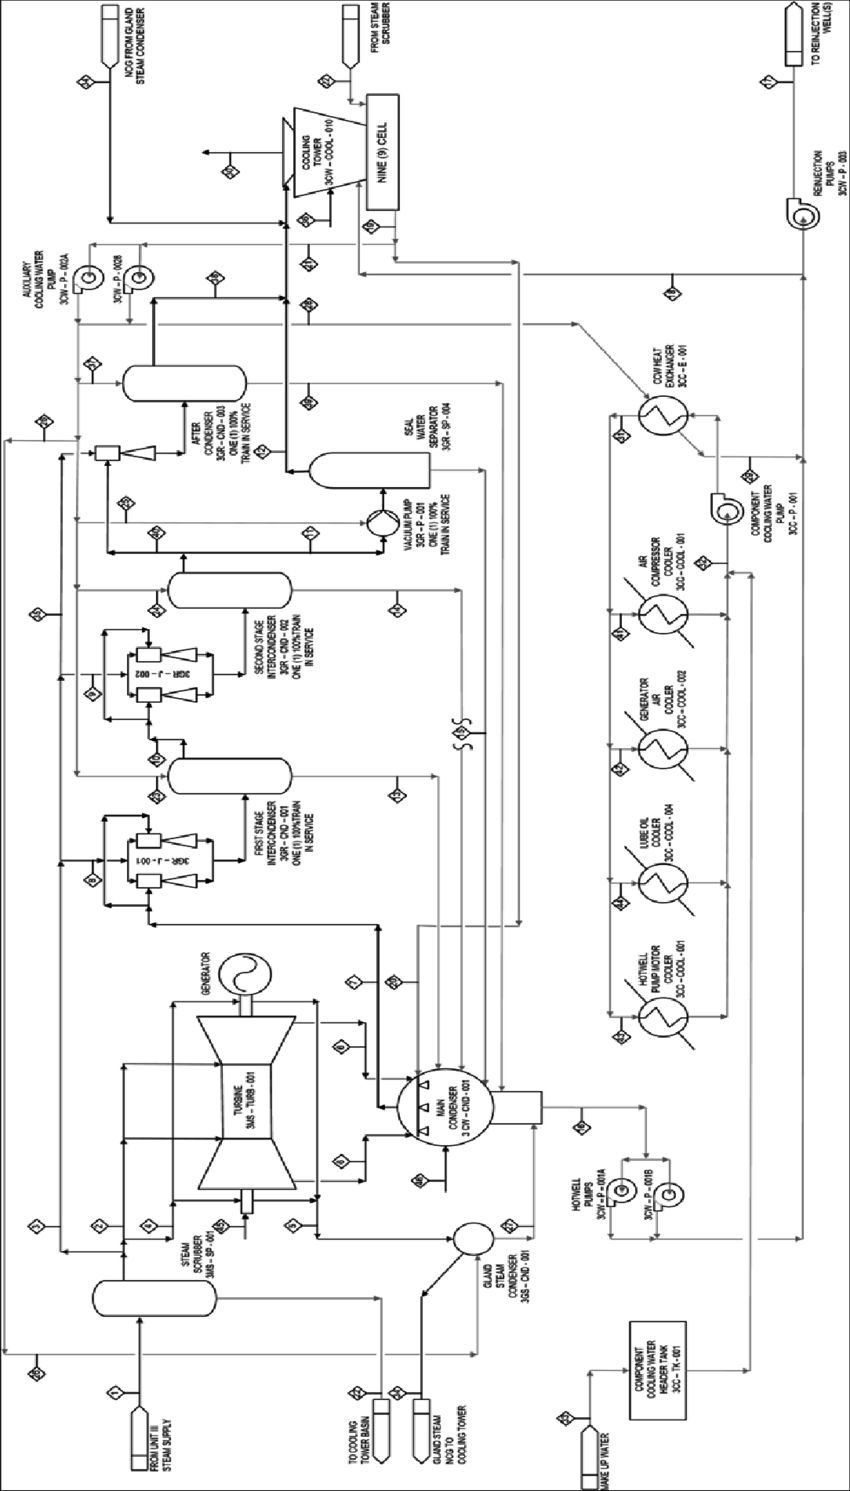 hight resolution of process flow diagram pfd of darajat unit iii